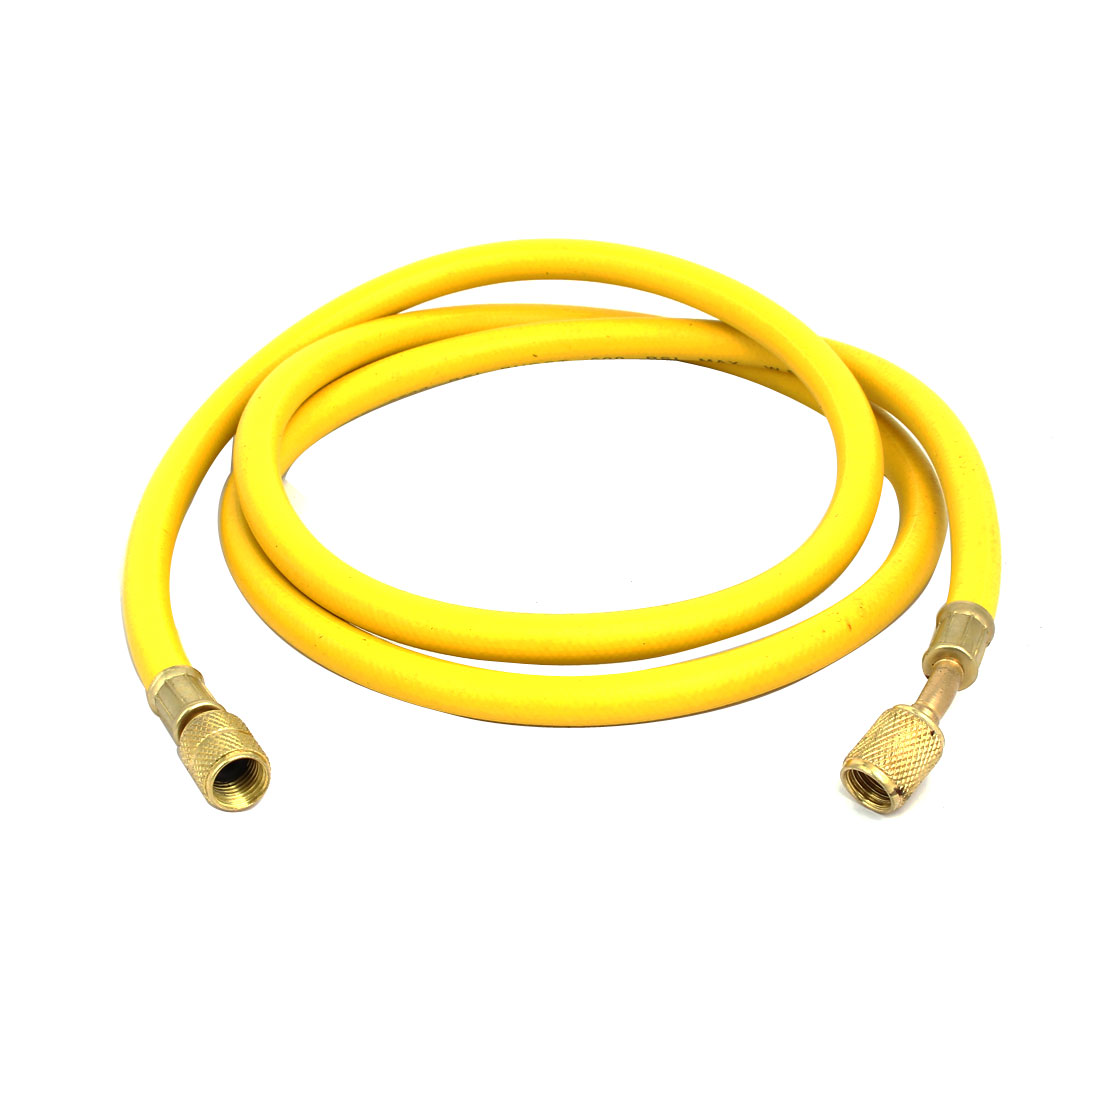 1.36M 1/4NPT to M12 Refrigeration Charging Hose Yellow for AC Refrigerant R22 R134